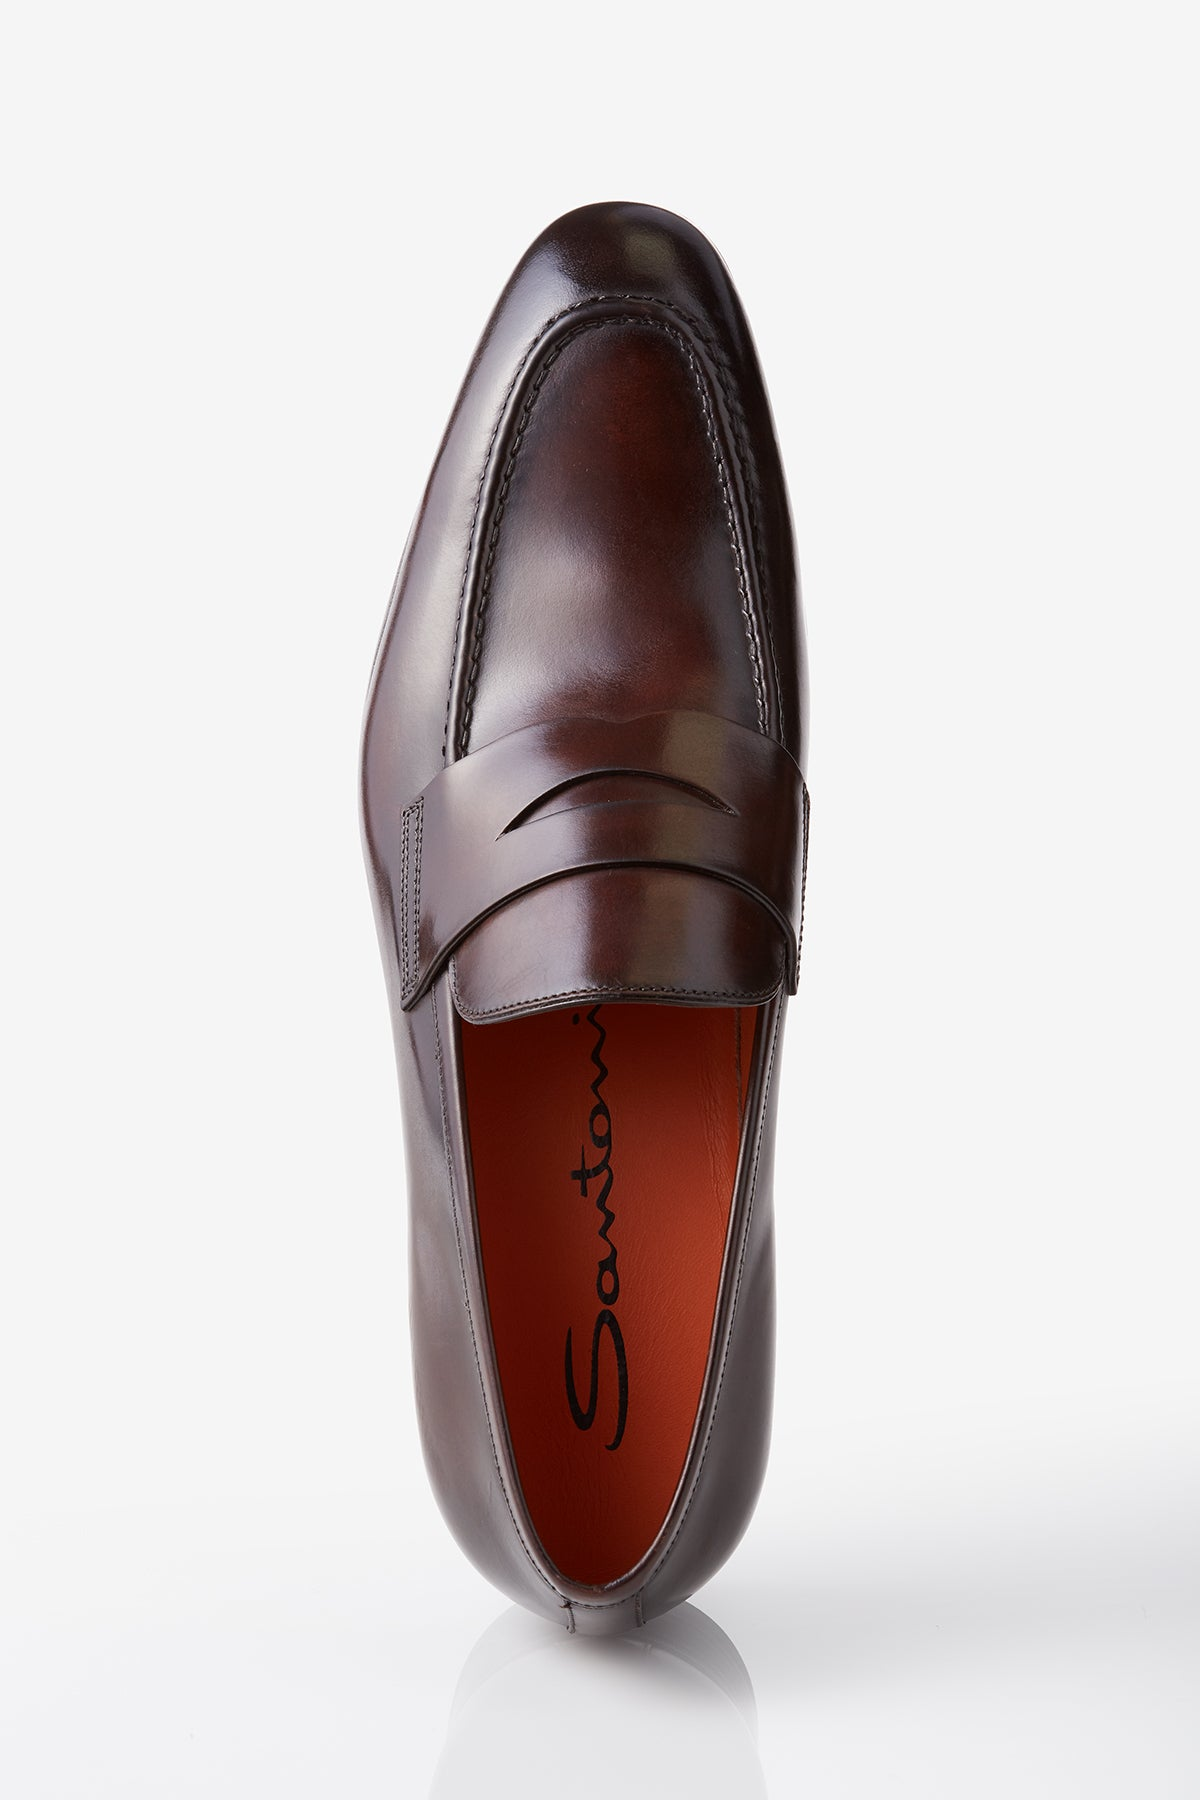 Santoni Gavin Leather Penny Loafer in Dark Brown